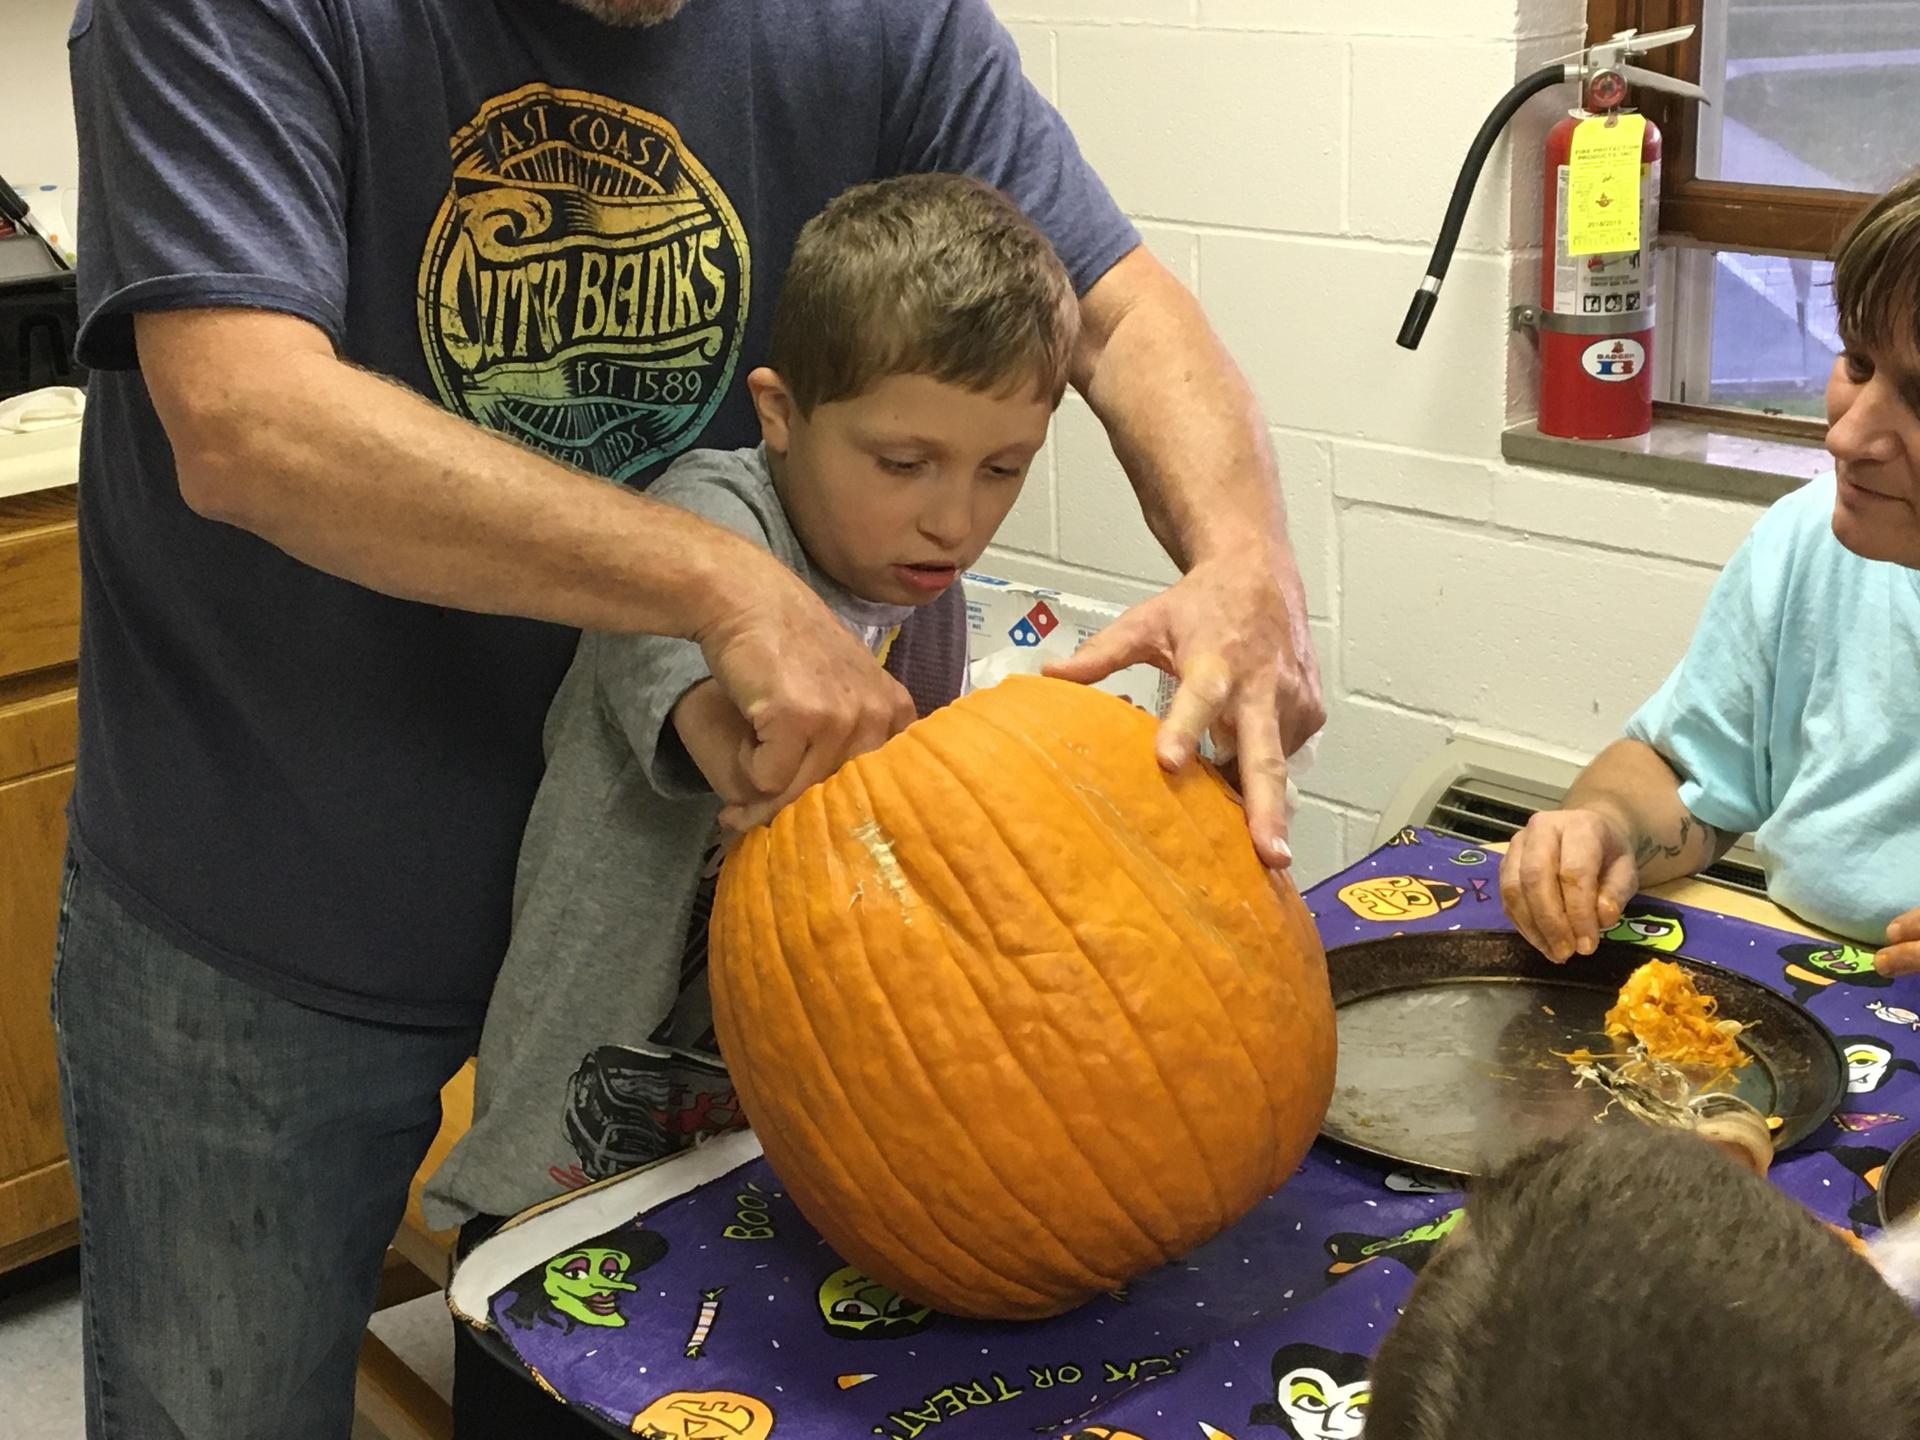 Student digging into a pumkin to clean out the seed with RCS standing close behind